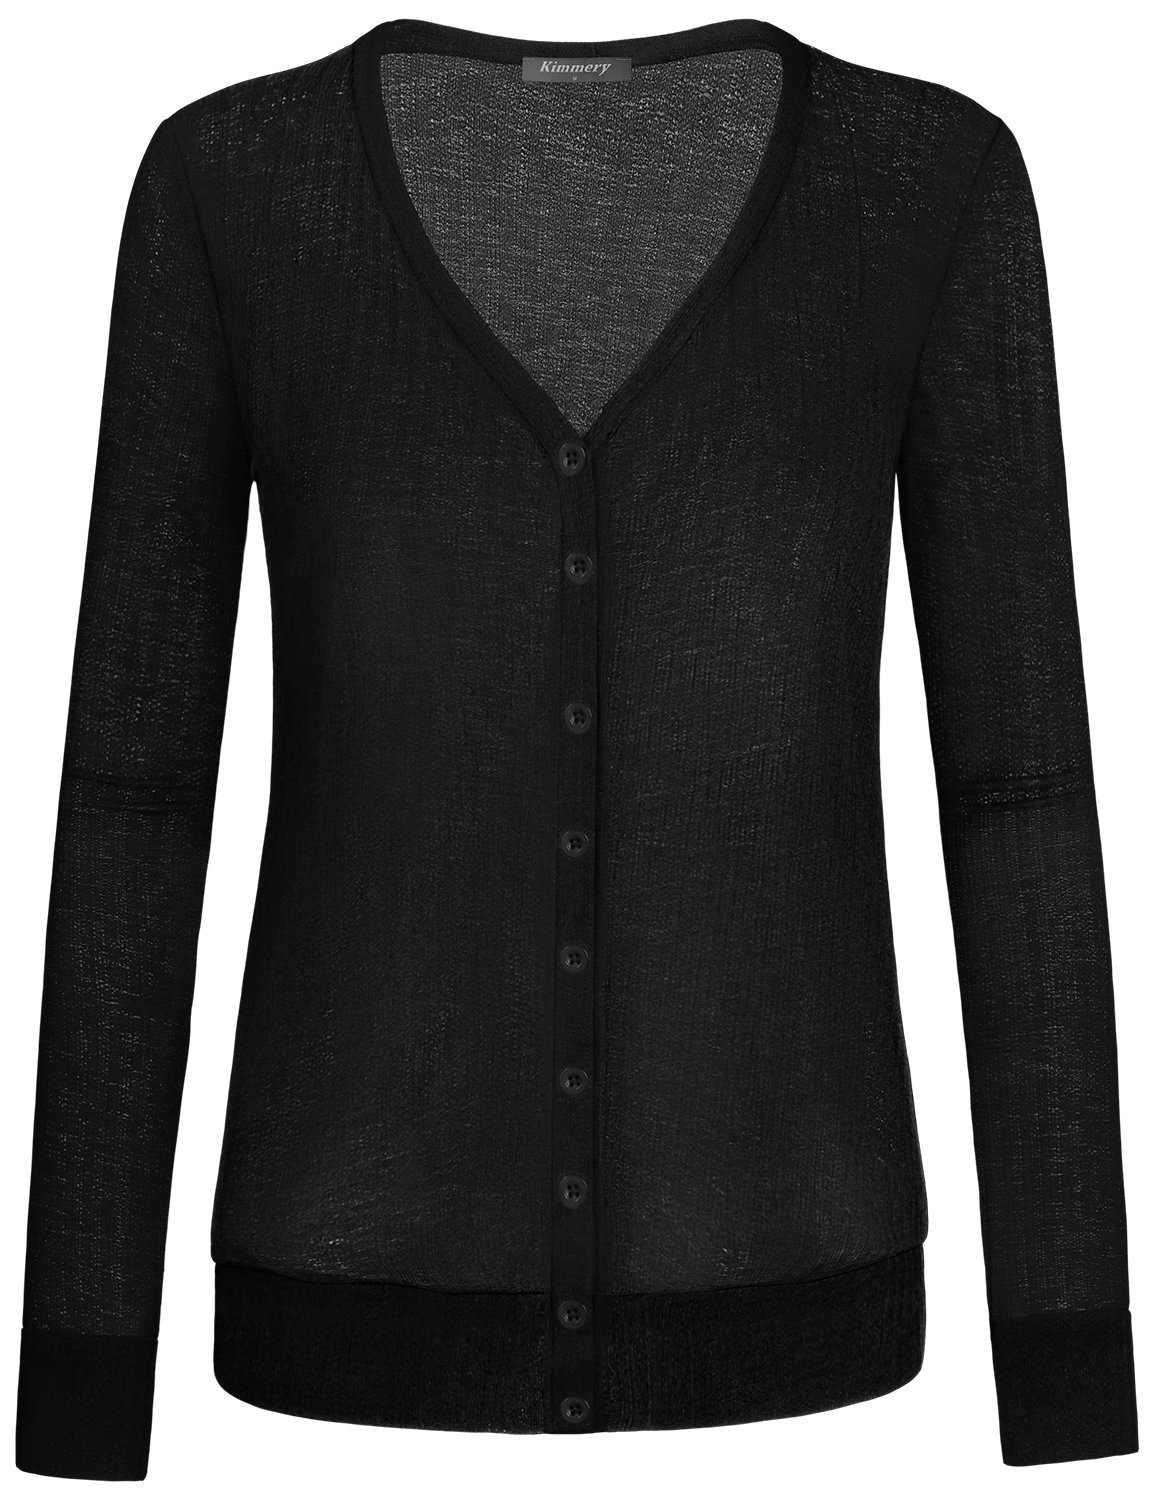 Button Down Cardigans for Women, Kimmery Henley Shirts Basic Long sleeve Classic V Neckline Fashion Fall Clothes for Juniors for Work Everyday Casual Loose Fitting Top Trendy Simple Style Black Medium